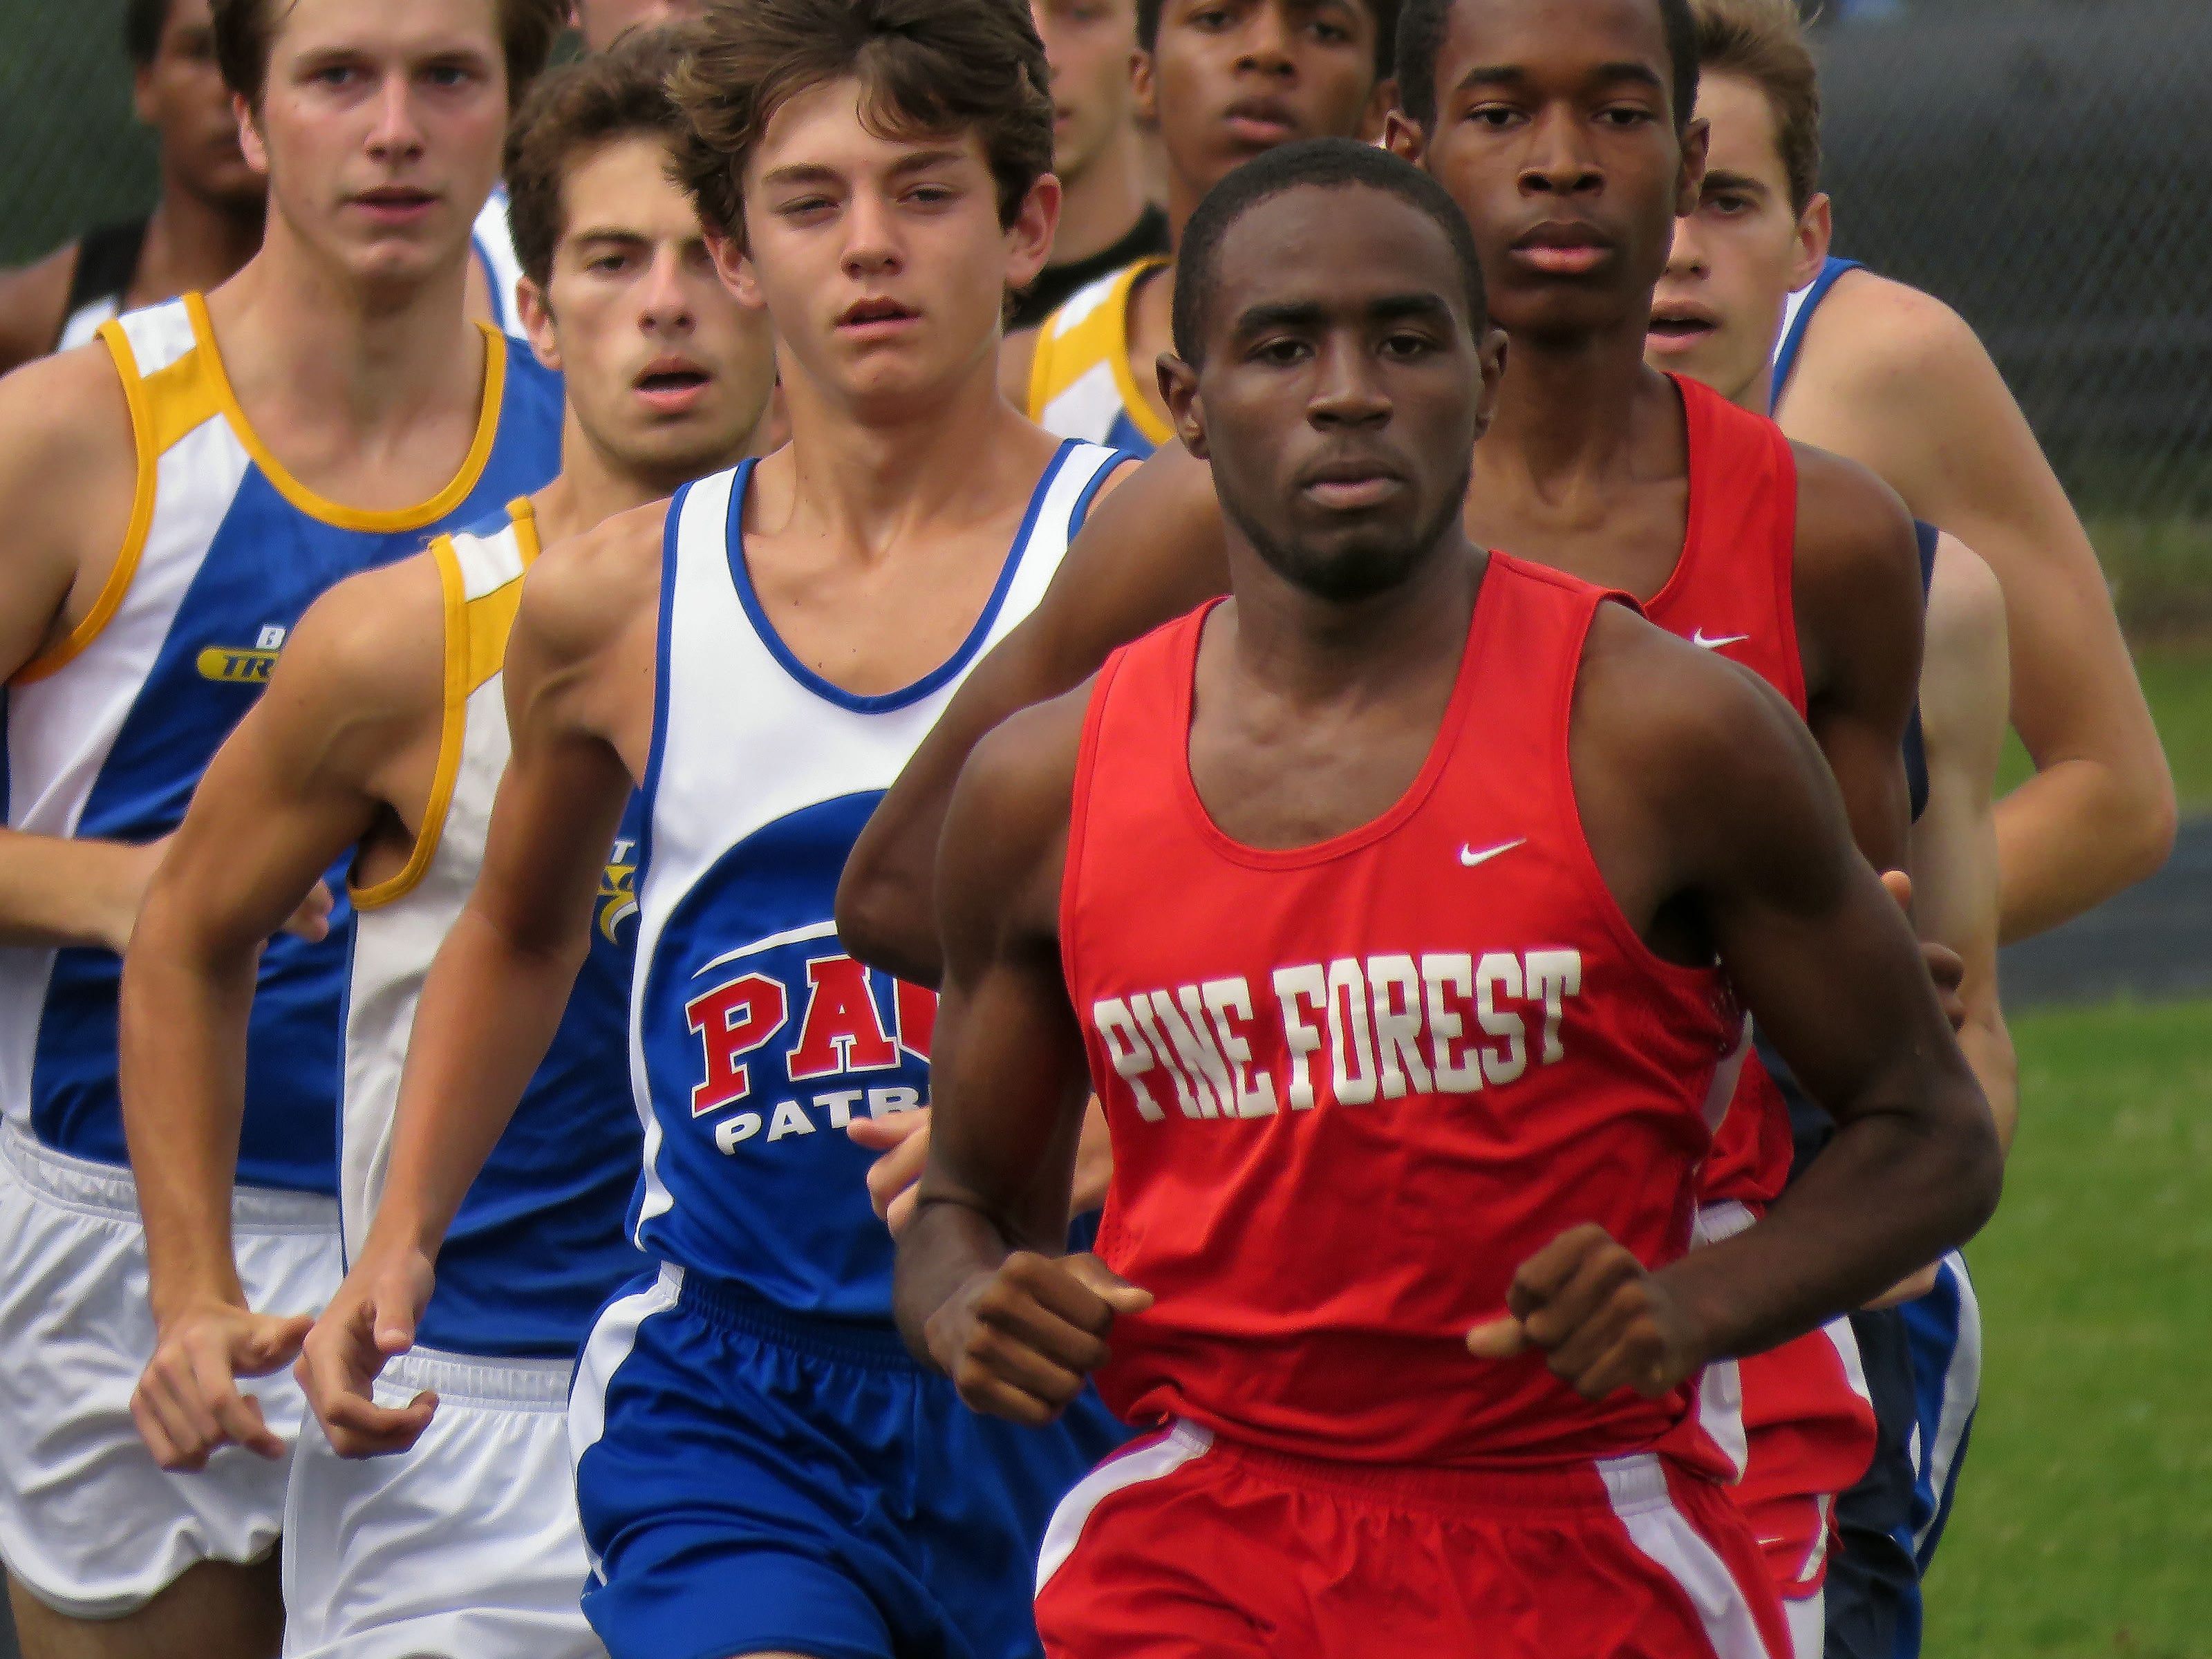 Members of the Pine Forest track team lead the boys 1600 meter event Wednesday during the District 1-3A Track and Field Championships at Washington High School.